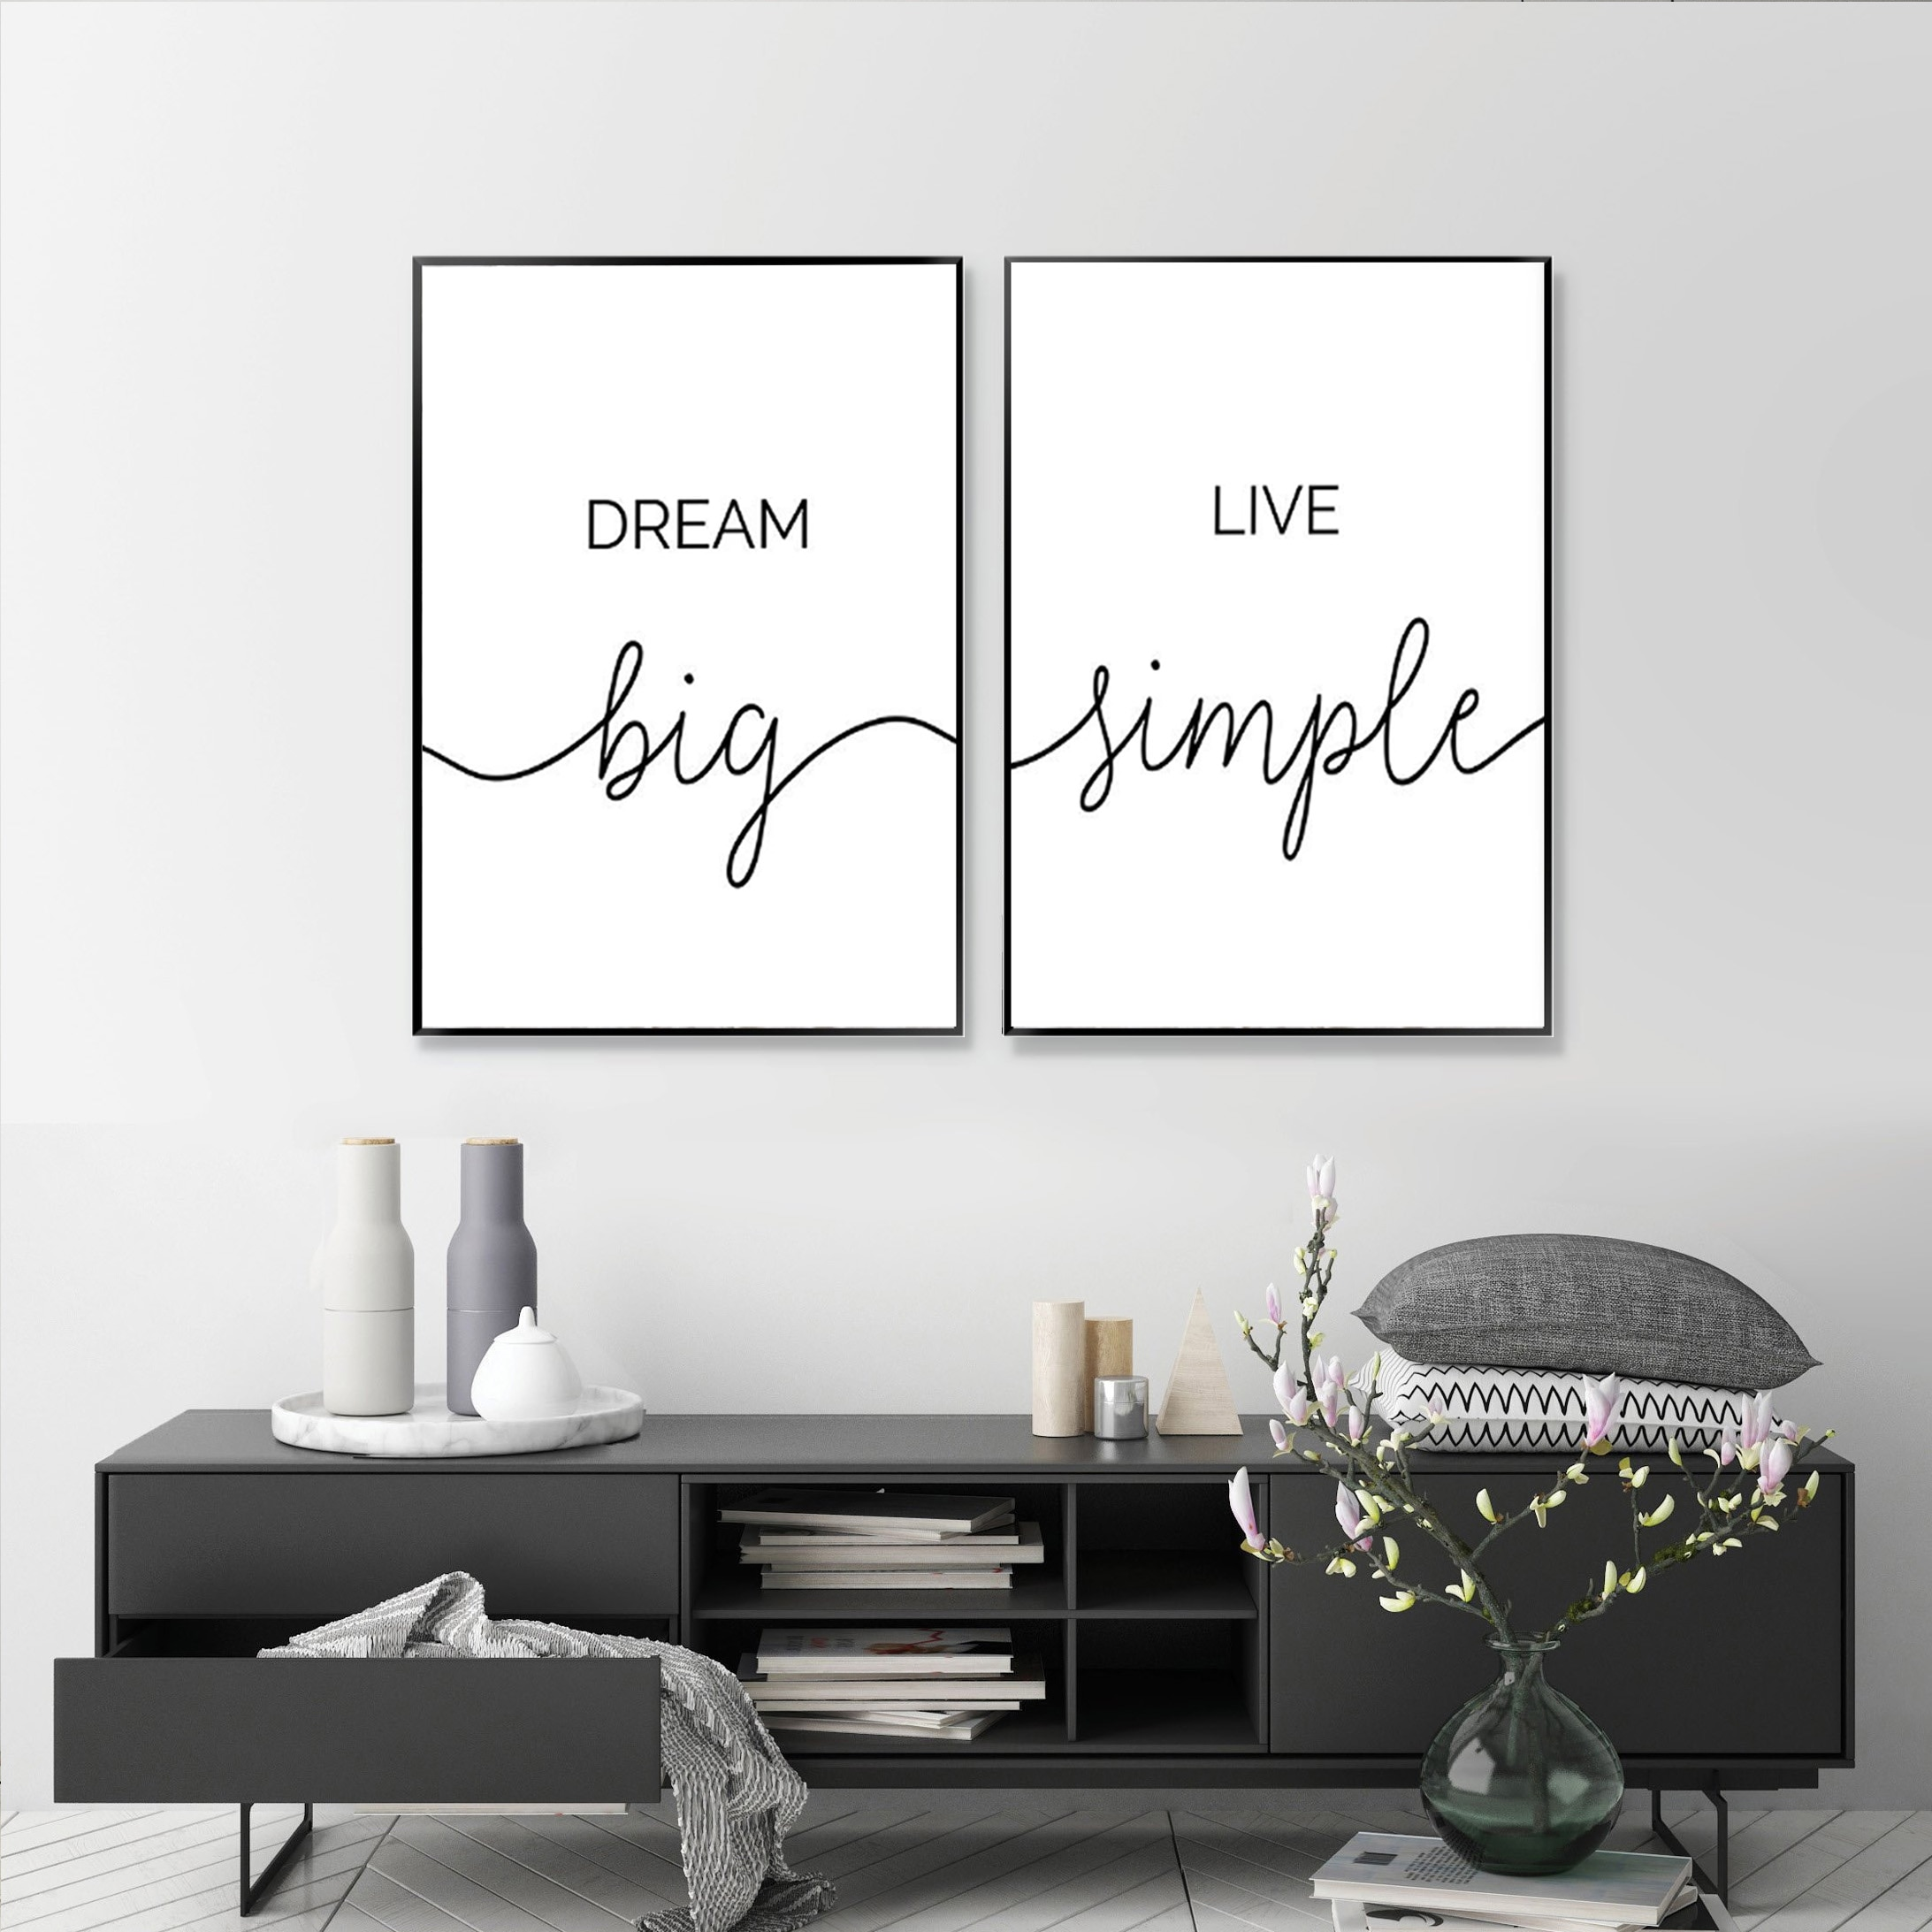 Minimalist Dream Big Live Simple Quote Canvas Paintings Black And White Bedroom Wall Art Prints Poster Pictures For Home Decor Nana S Corner Beauty Cosmetic